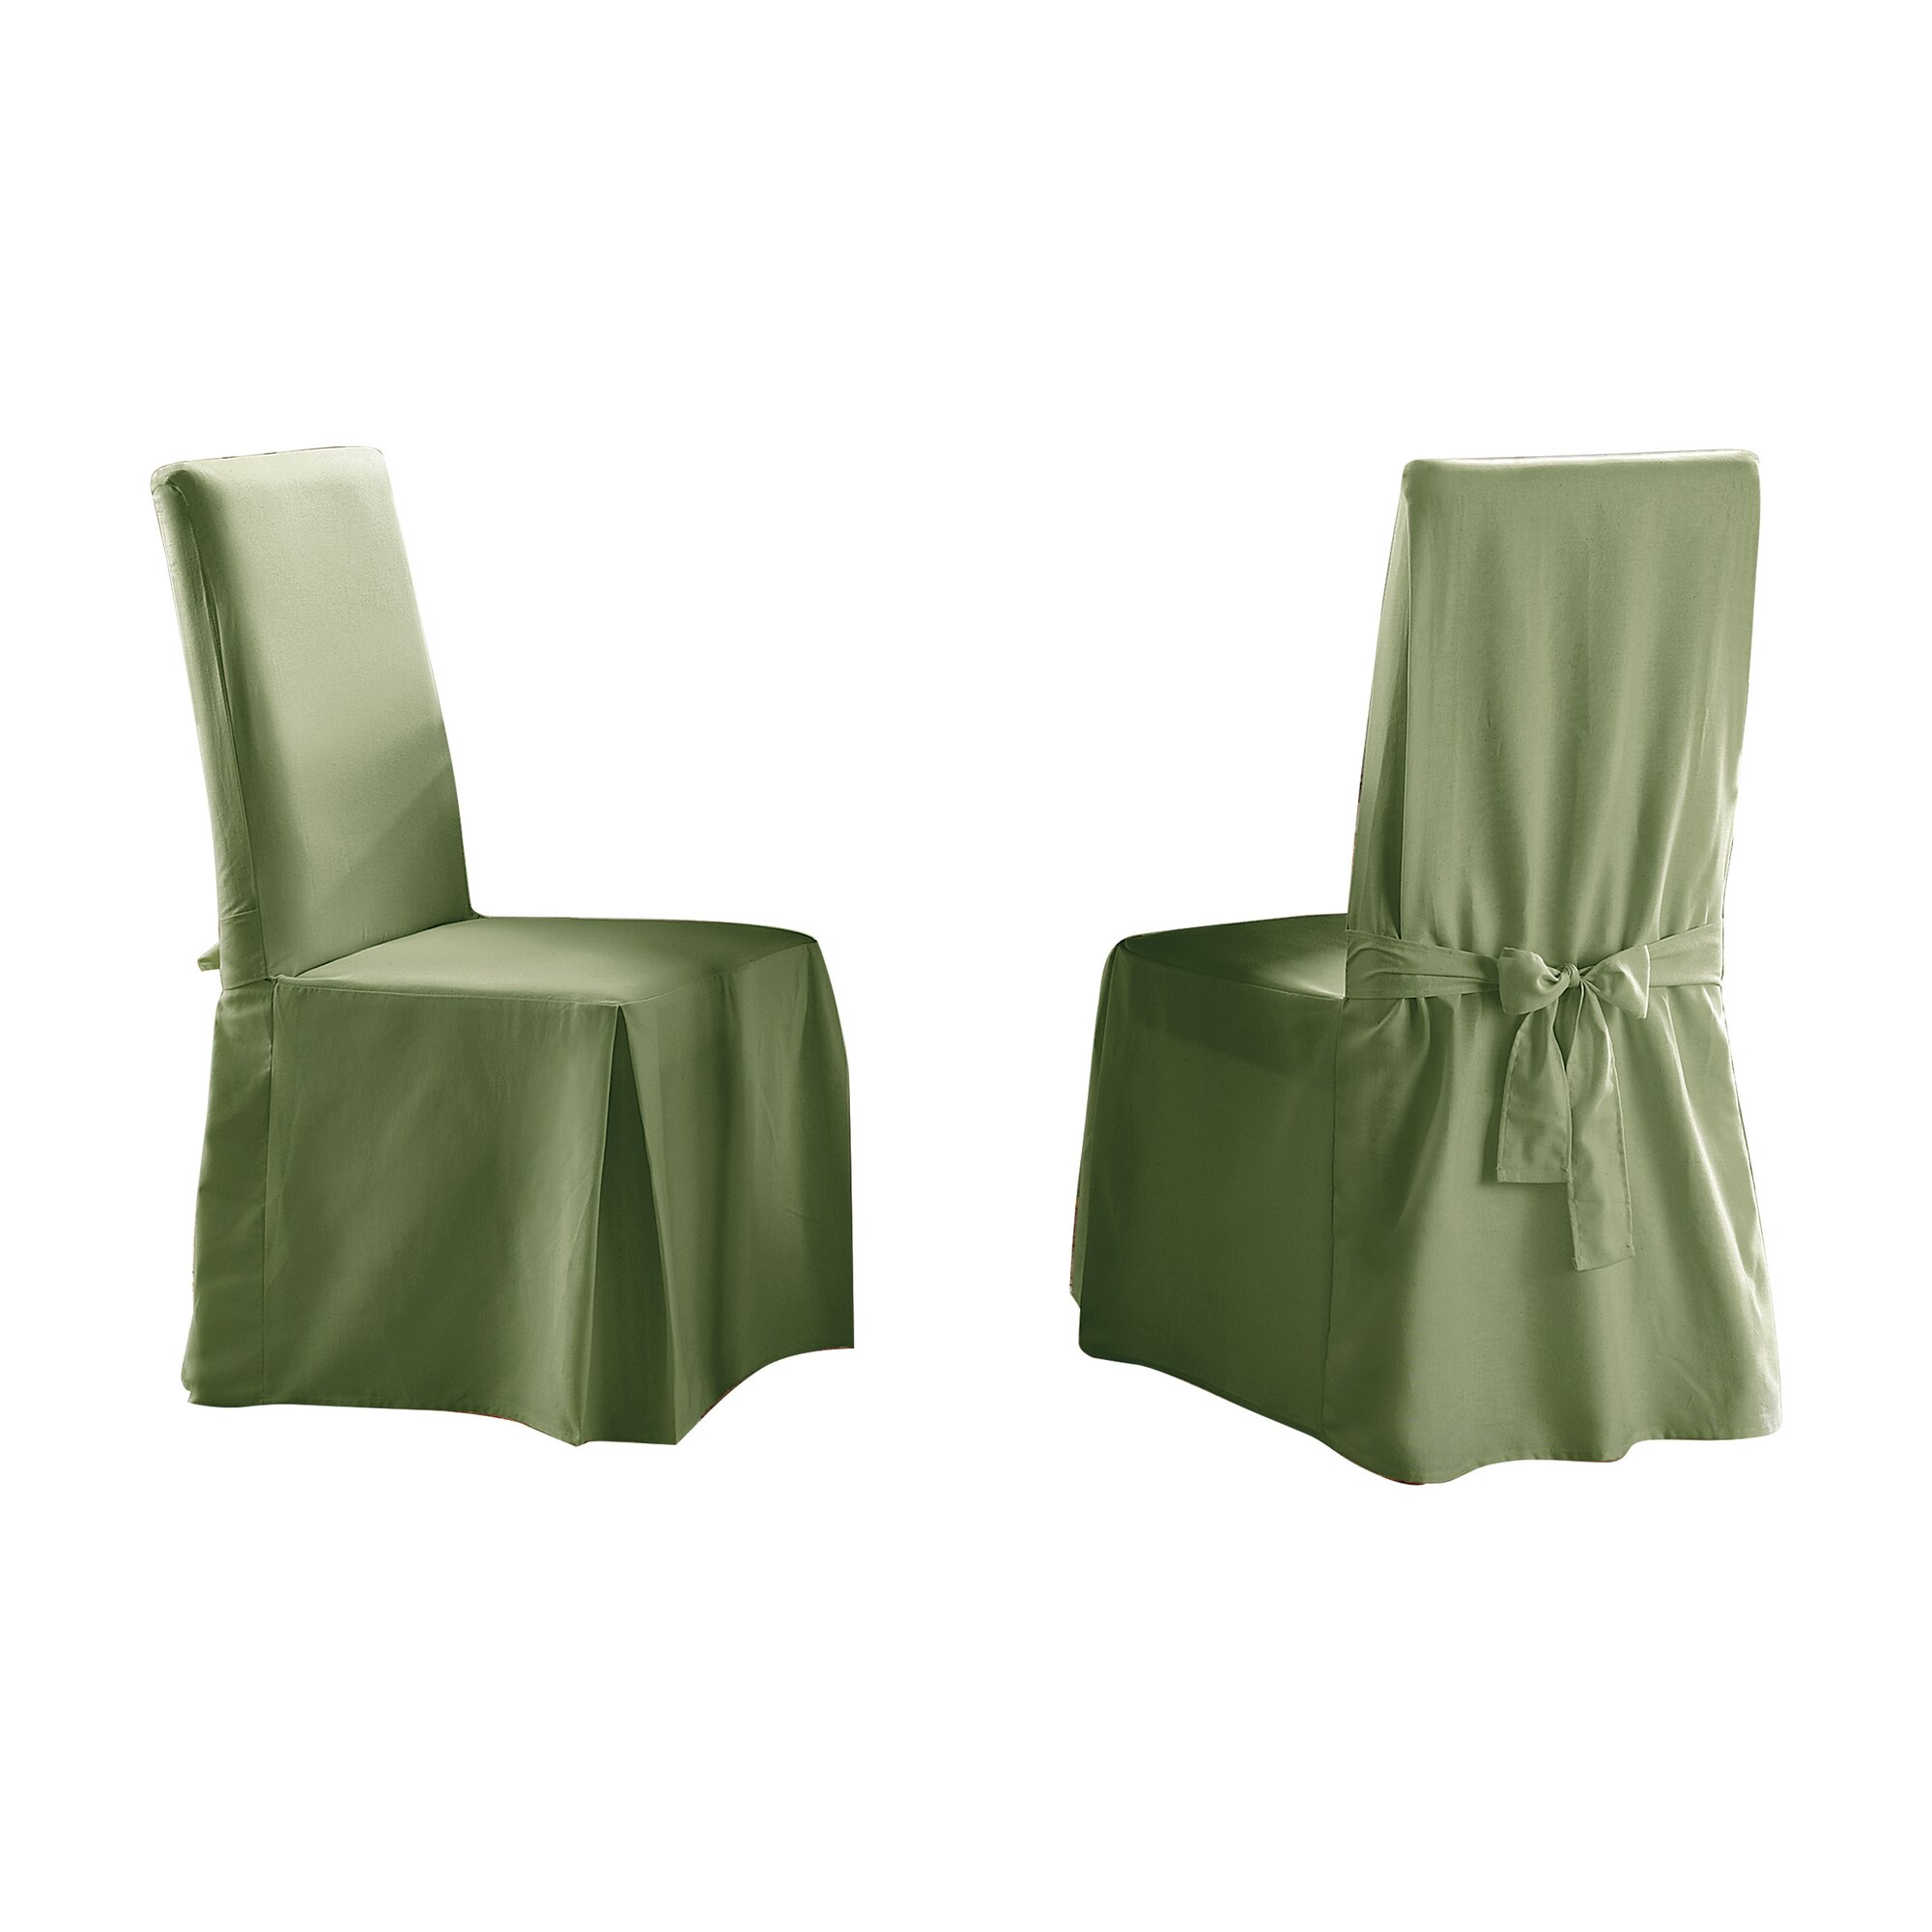 Slipcovers Furniture Covers Pillows amp Home Furnishings